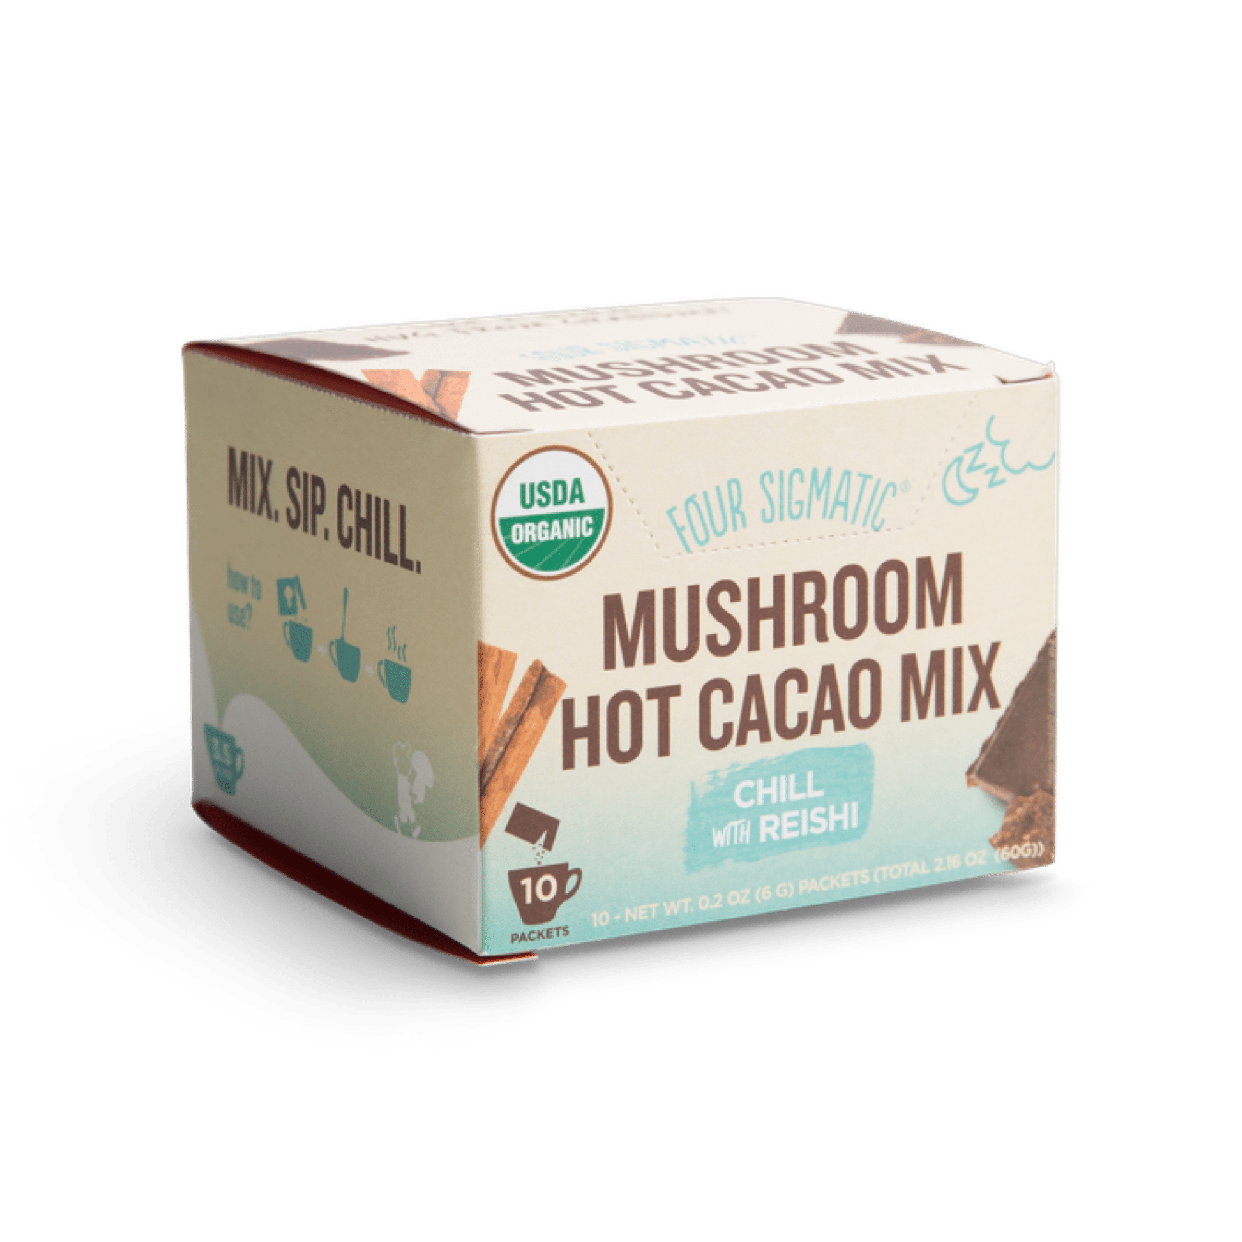 four sigmatic - hot cacao mix with reishi mushroom